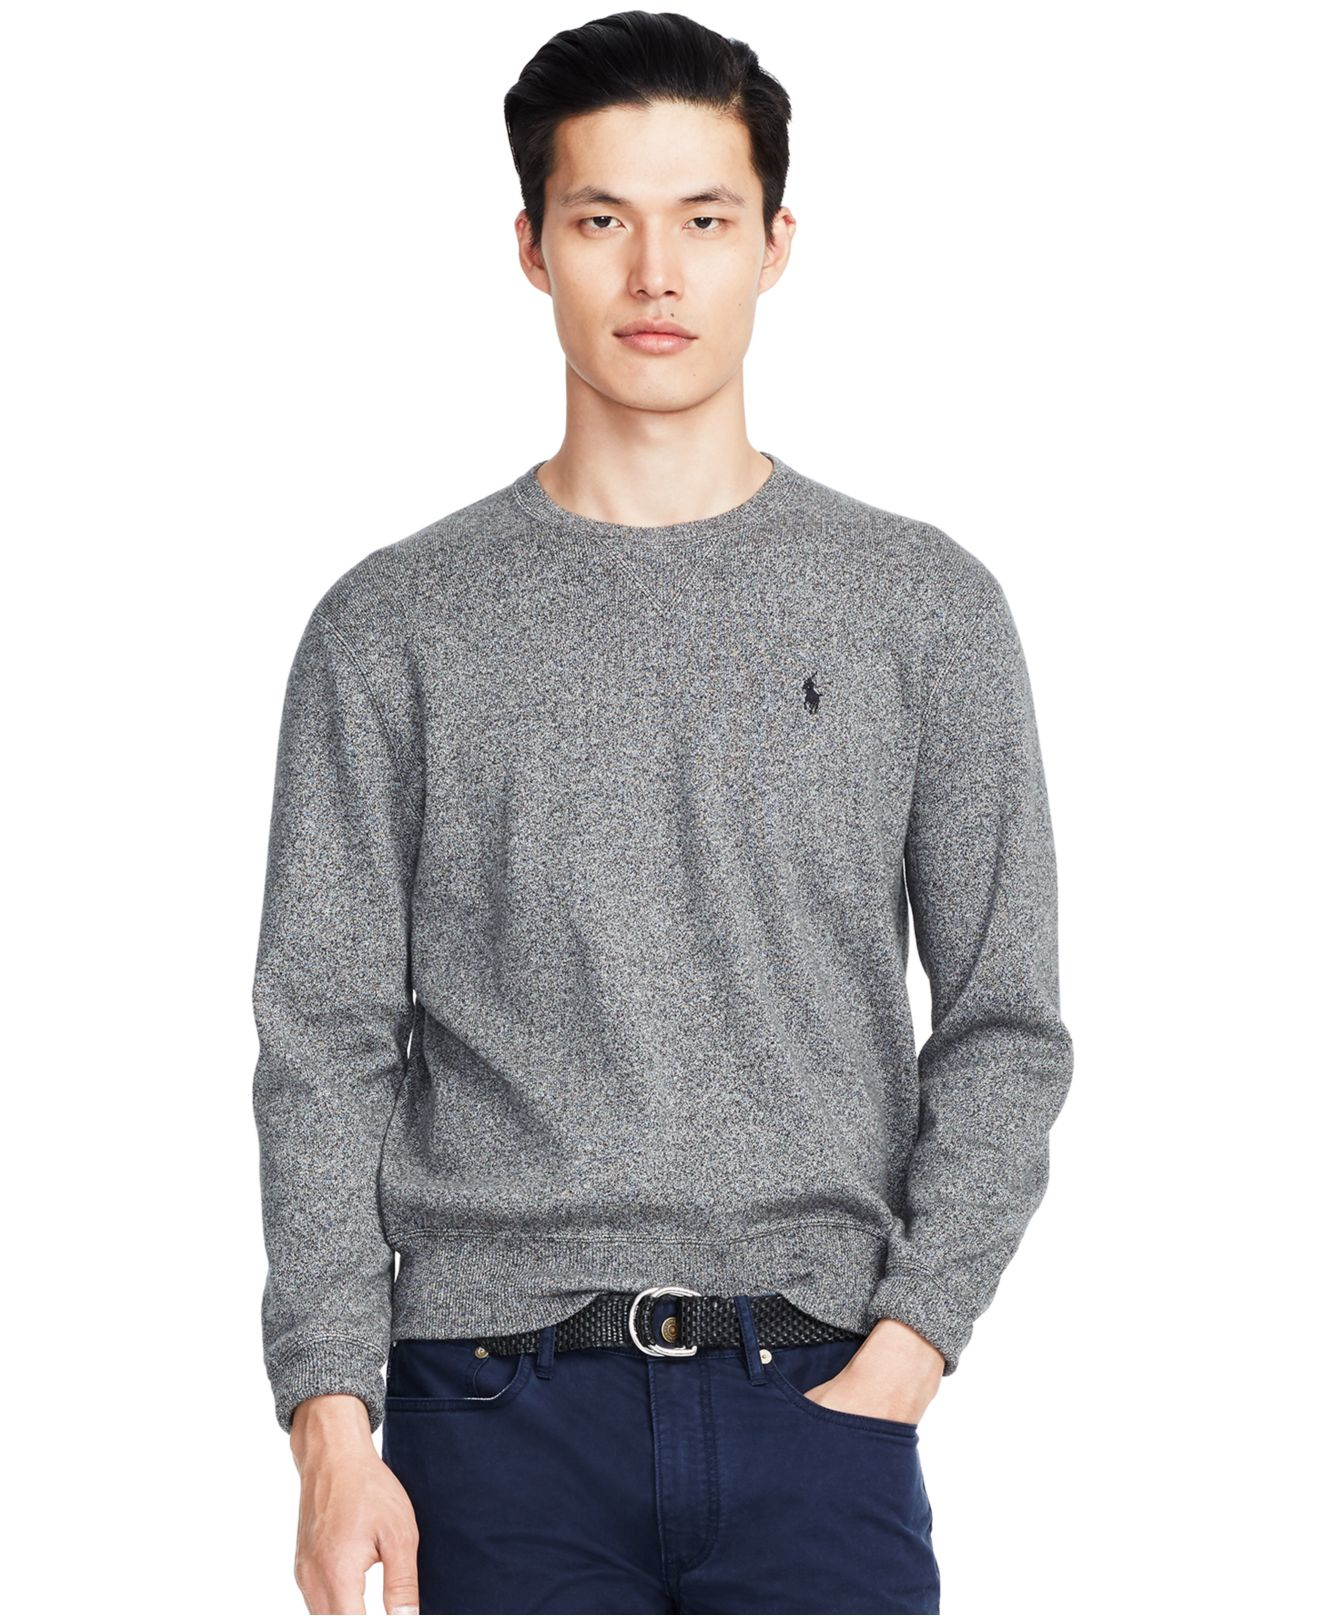 Polo Ralph Lauren | Black Cotton Crew-neck Sweatshirt for Men | Lyst. View